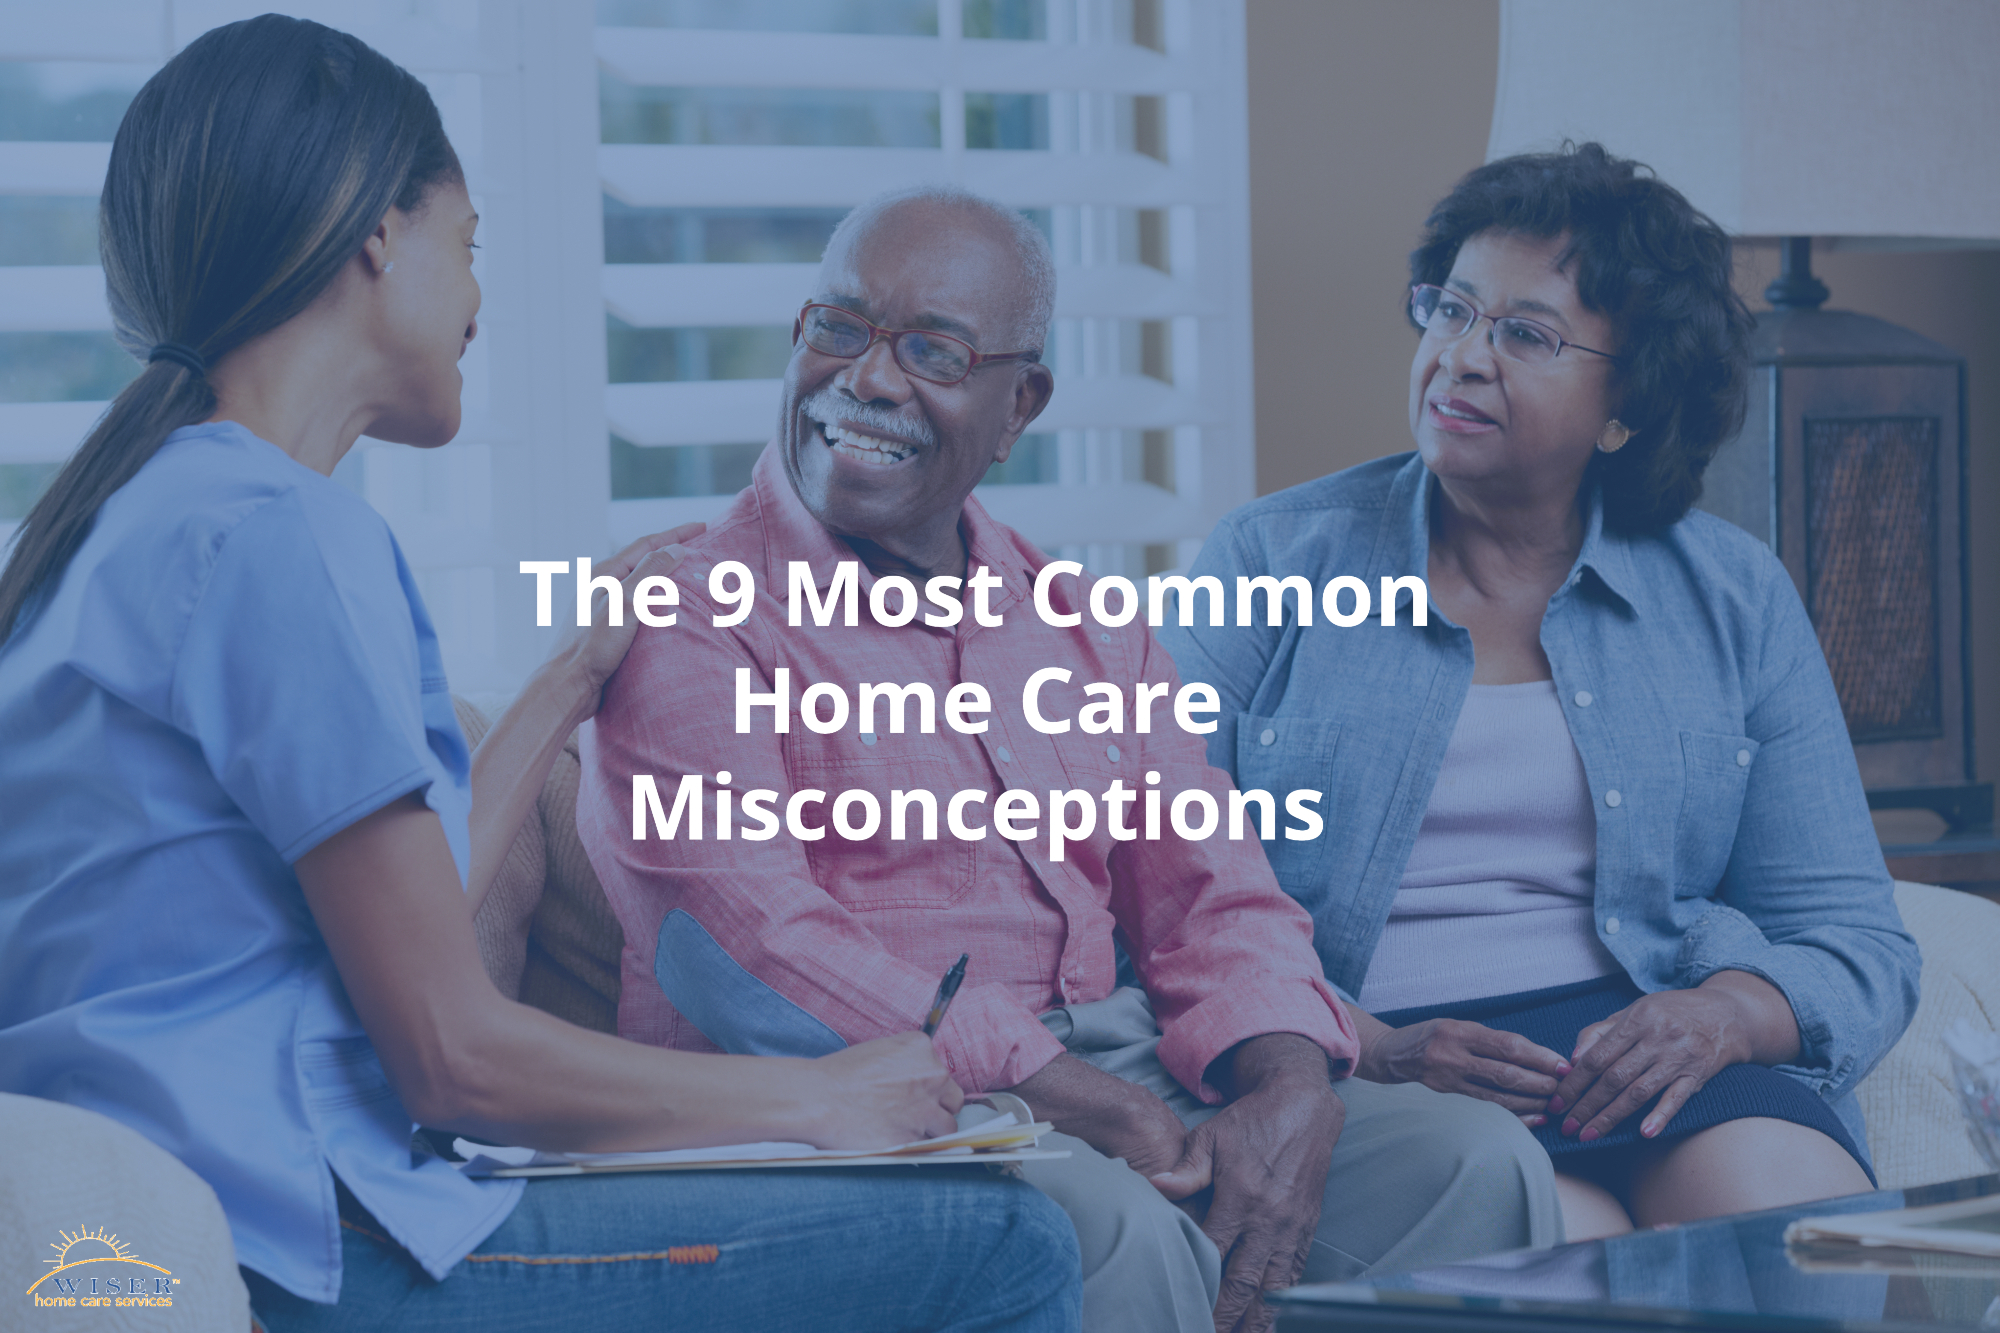 The 9 Most Common Home Care Misconceptions